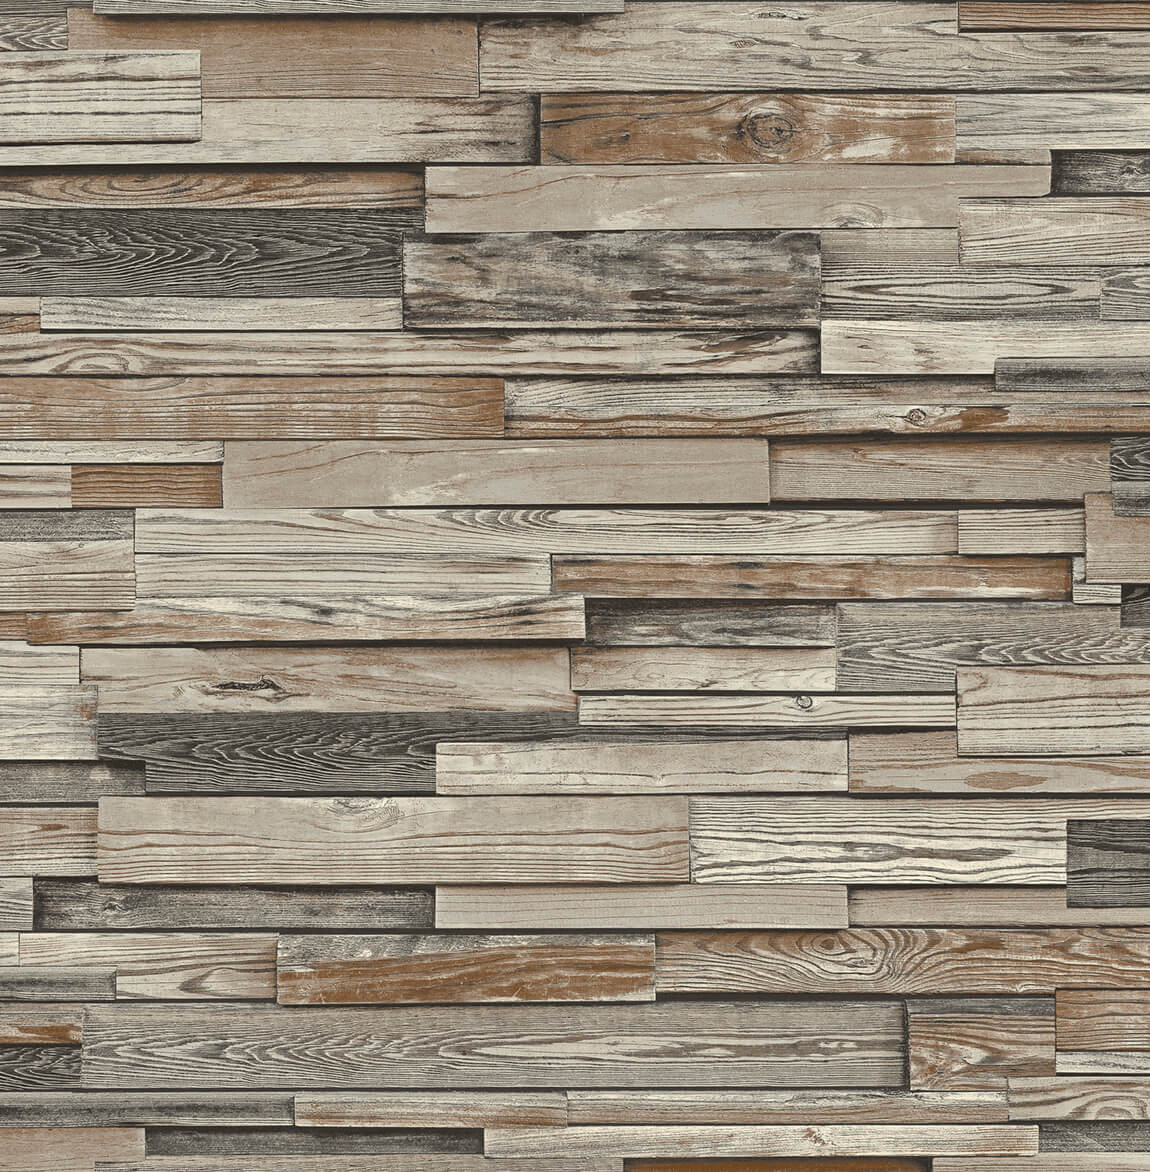 Reclaimed Wood Plank Peel And Stick Wallpaper In Charcoal And Brown By Burke Decor